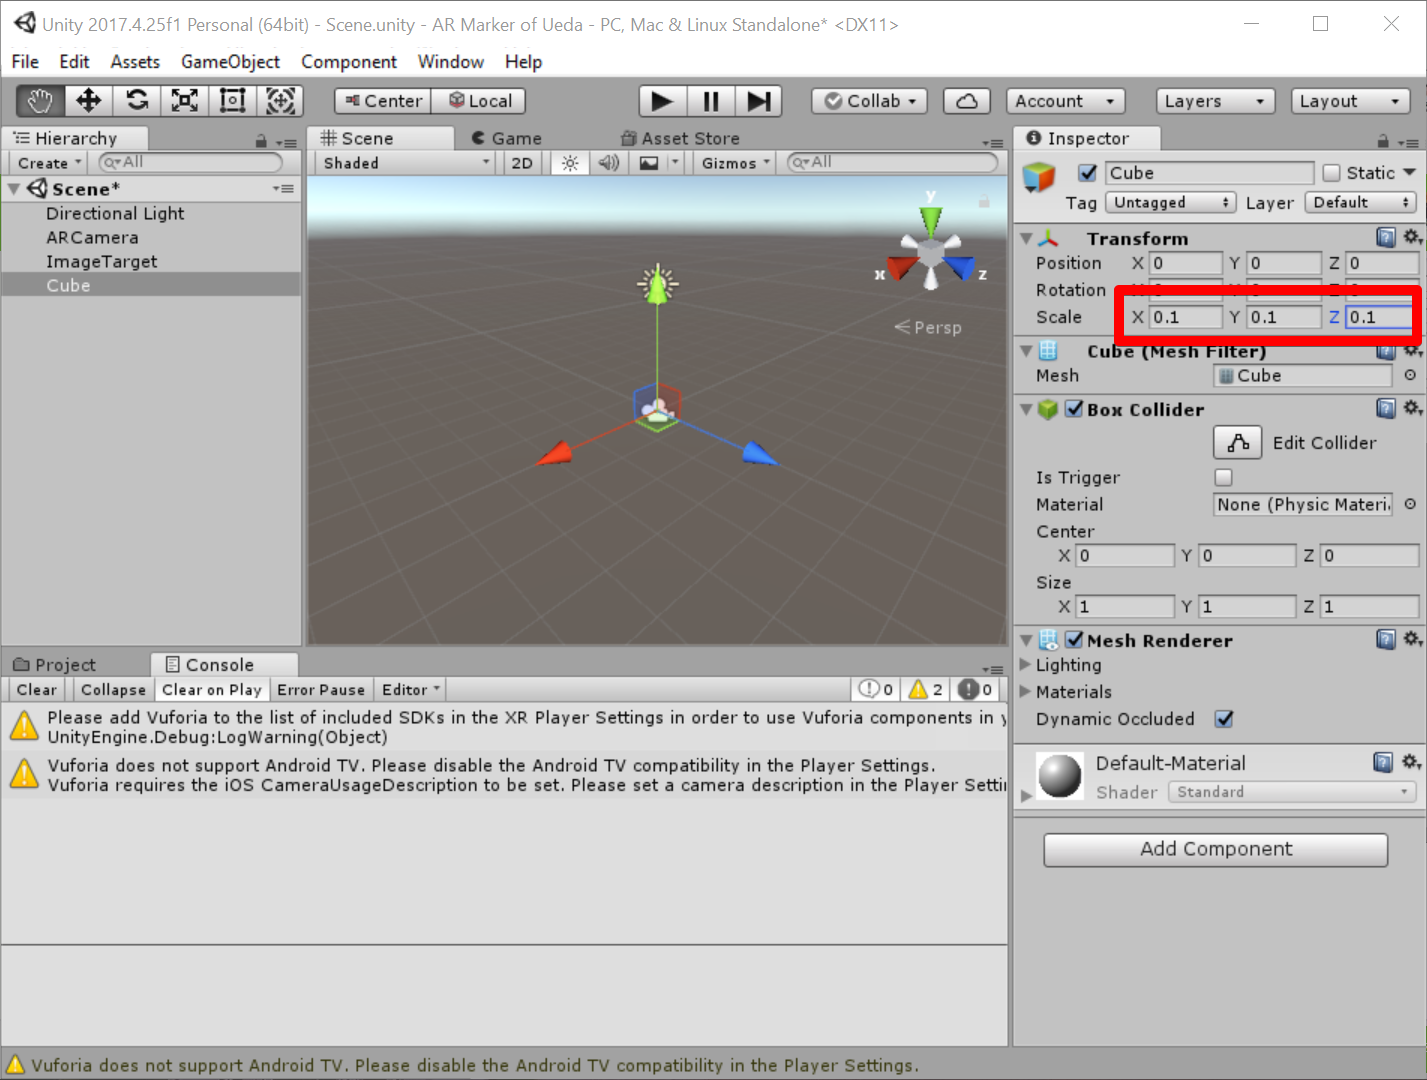 Unity 2017.4.25f1 Personal (64bit) - Scene.unity - AR Marker of Ueda - PC, Mac & Linux Standalone_ _DX11_ 2019-07-05 07.48.57.png